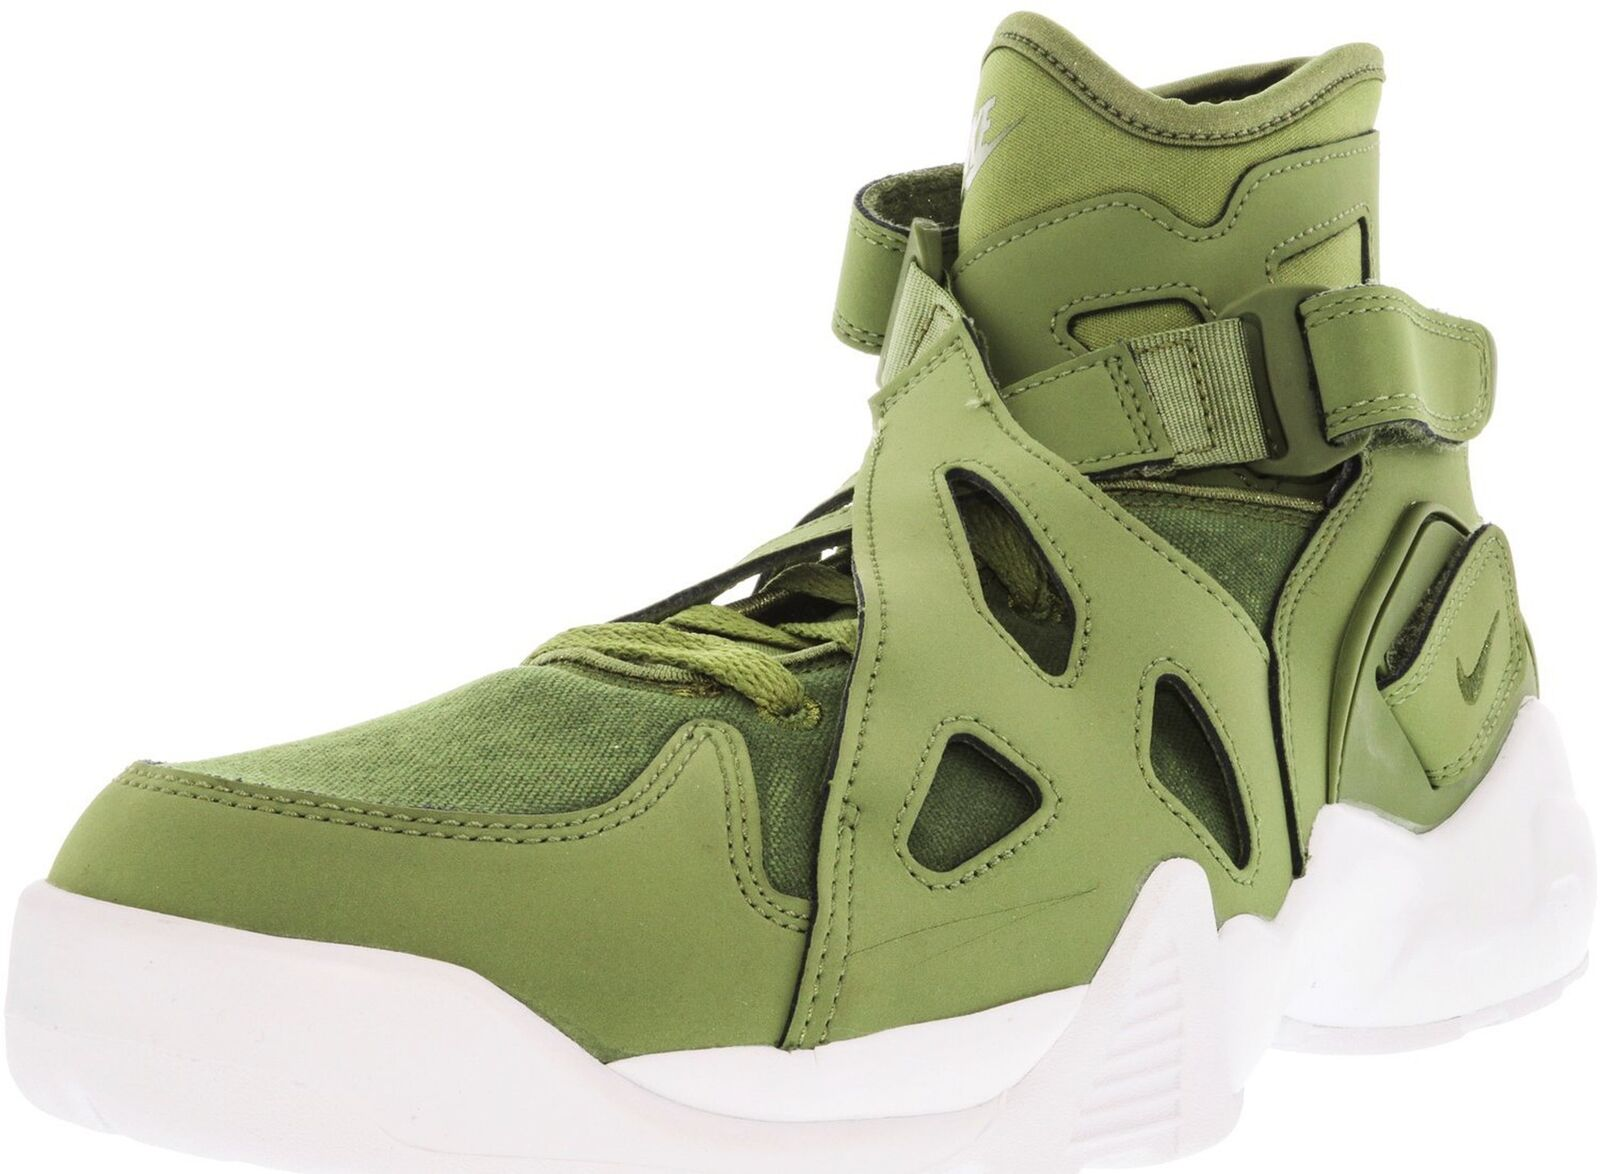 NIKE Men's Air Unlimited High-Top Basketball shoes